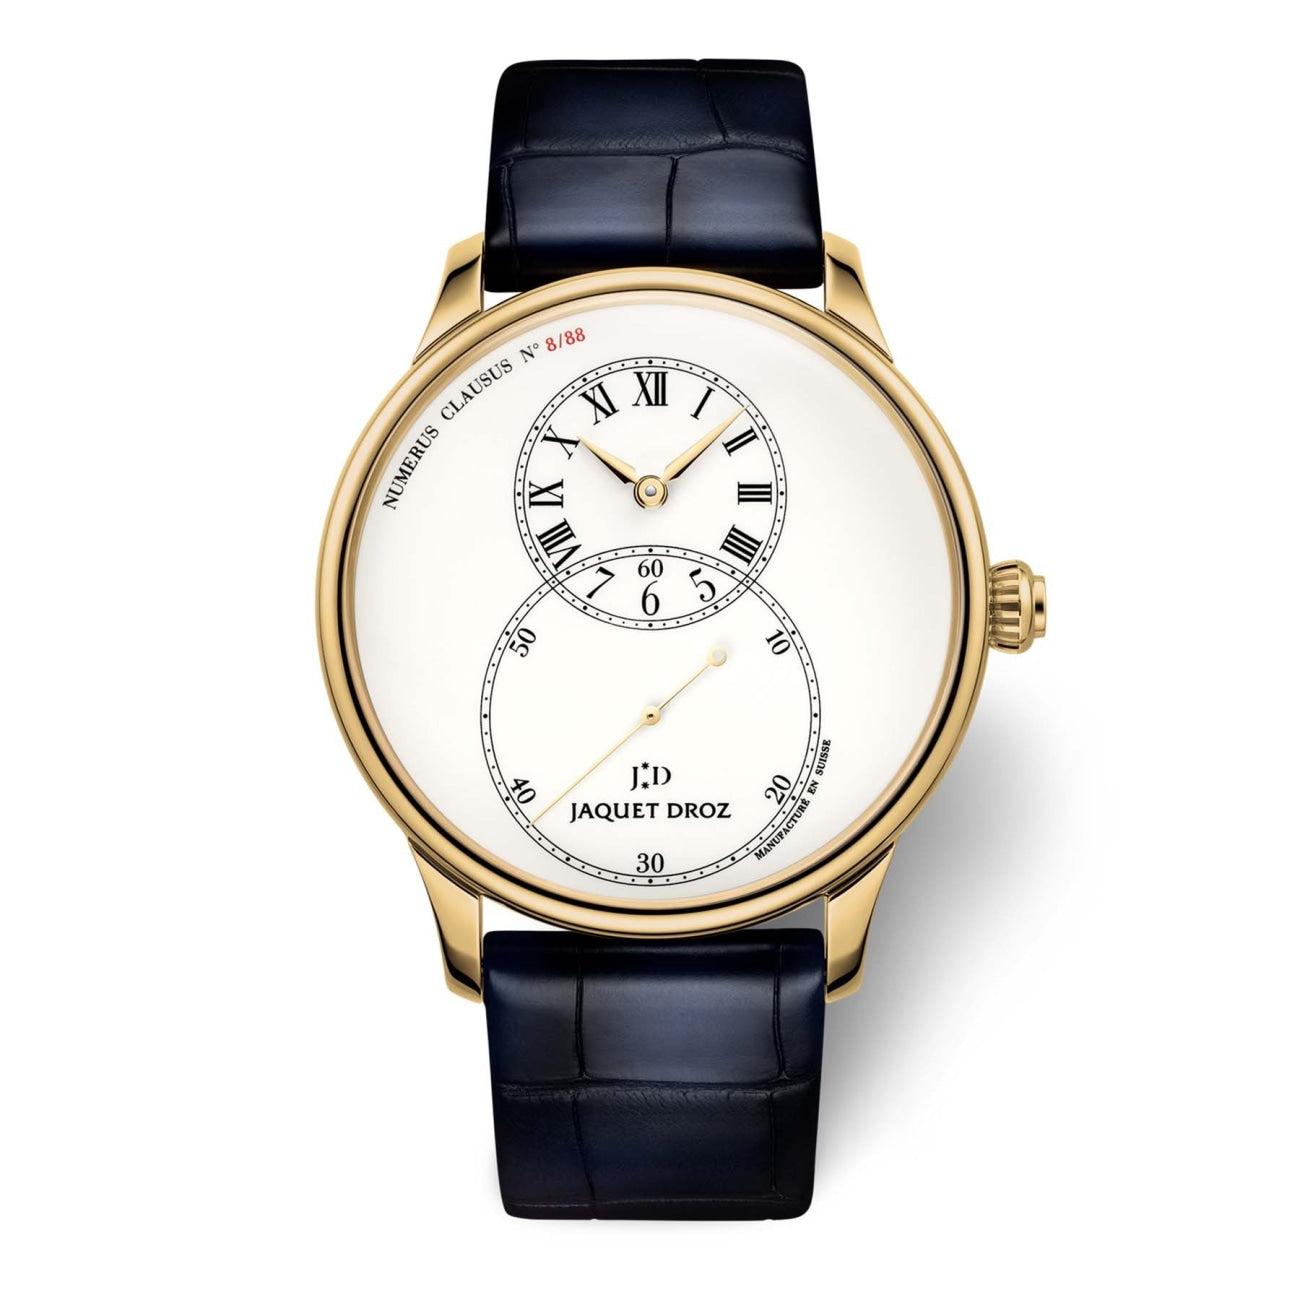 Jaquet Droz Watches - GRANDE SECONDE TRIBUTE | Manfredi Jewels